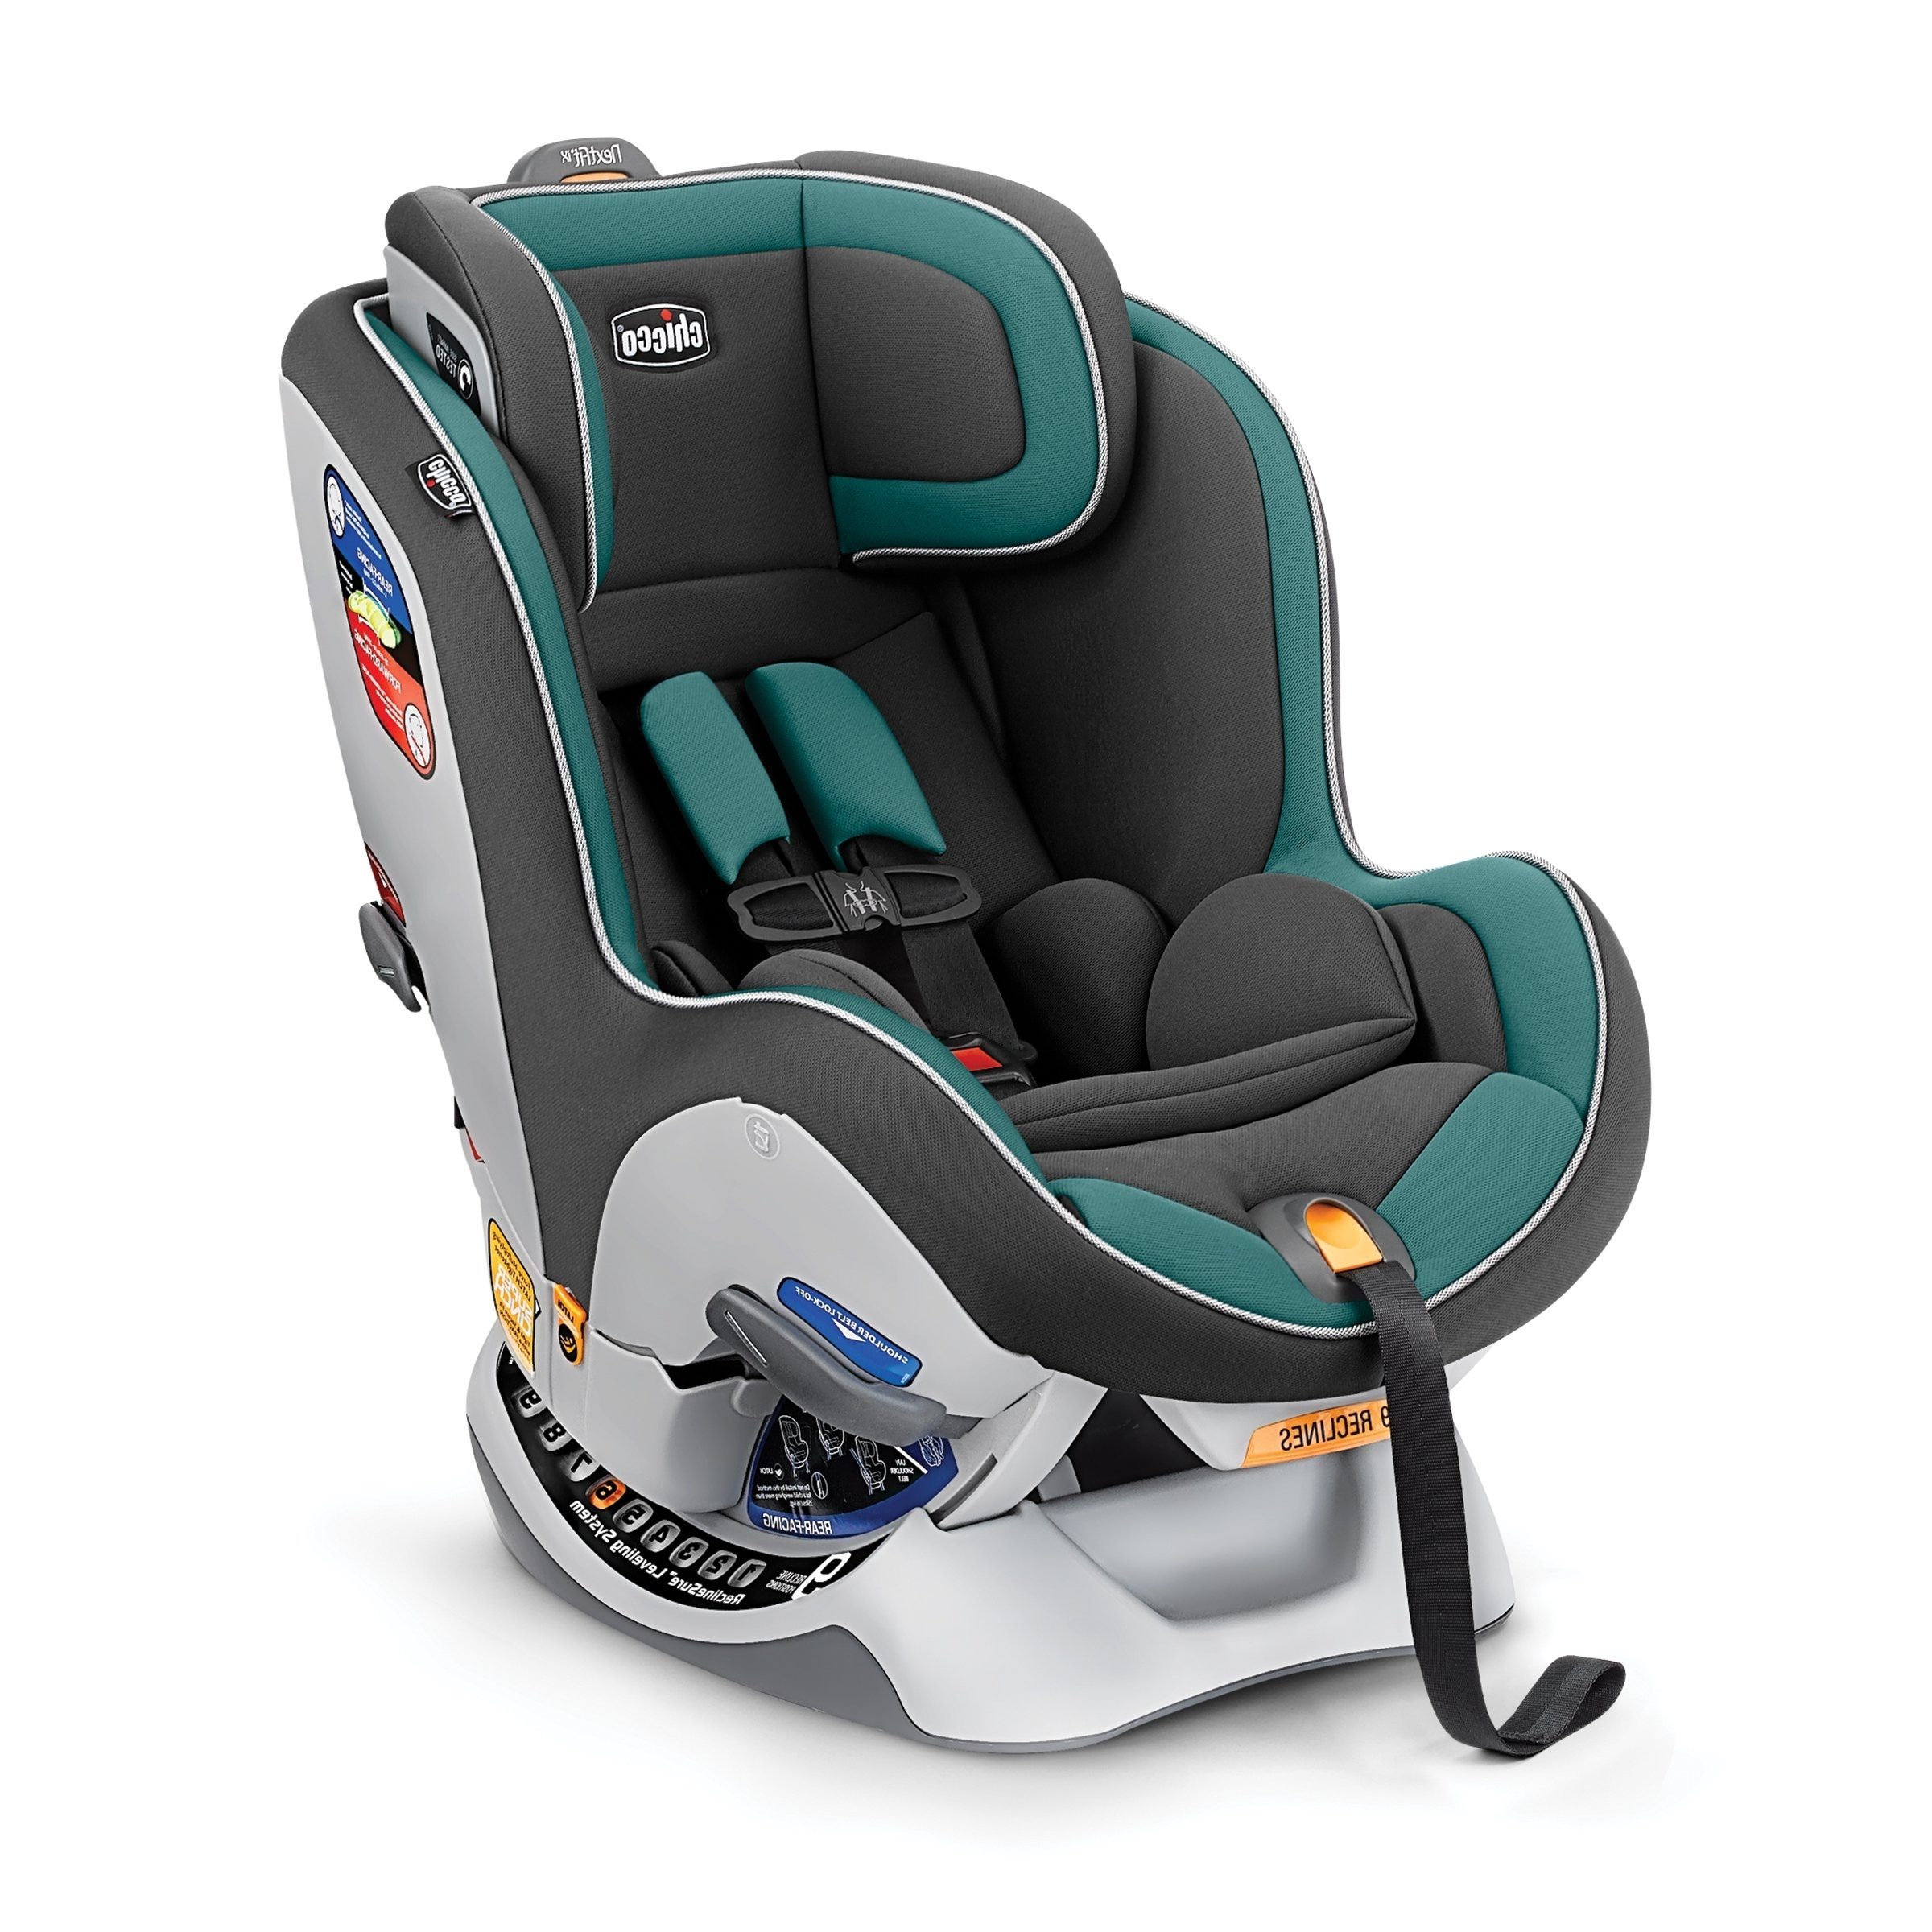 Alexa Firecracker Side Chairs Inside Well Known Amazon : Chicco Nextfit Ix Convertible Car Seat, Firecracker : Baby (View 18 of 20)